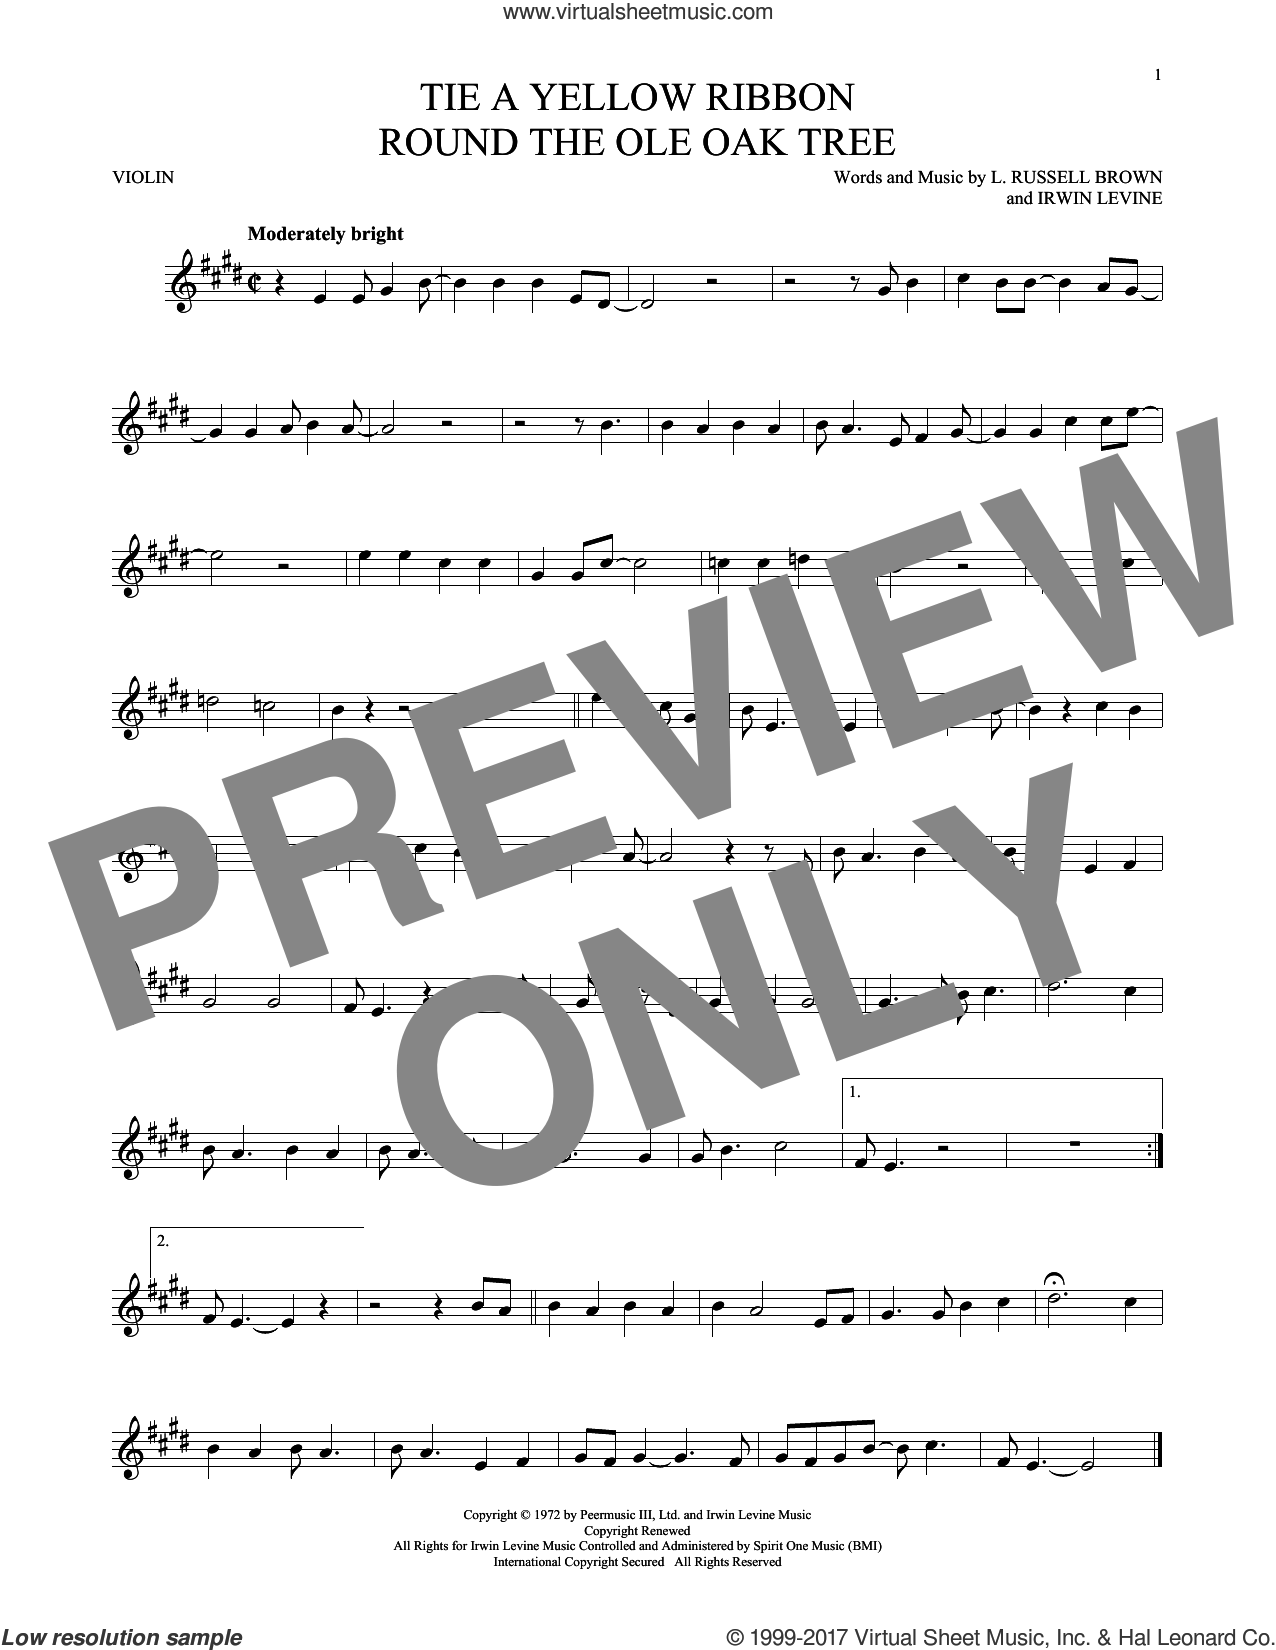 Tie A Yellow Ribbon Round The Ole Oak Tree sheet music for violin solo by Dawn featuring Tony Orlando, Irwin Levine and L. Russell Brown, intermediate skill level